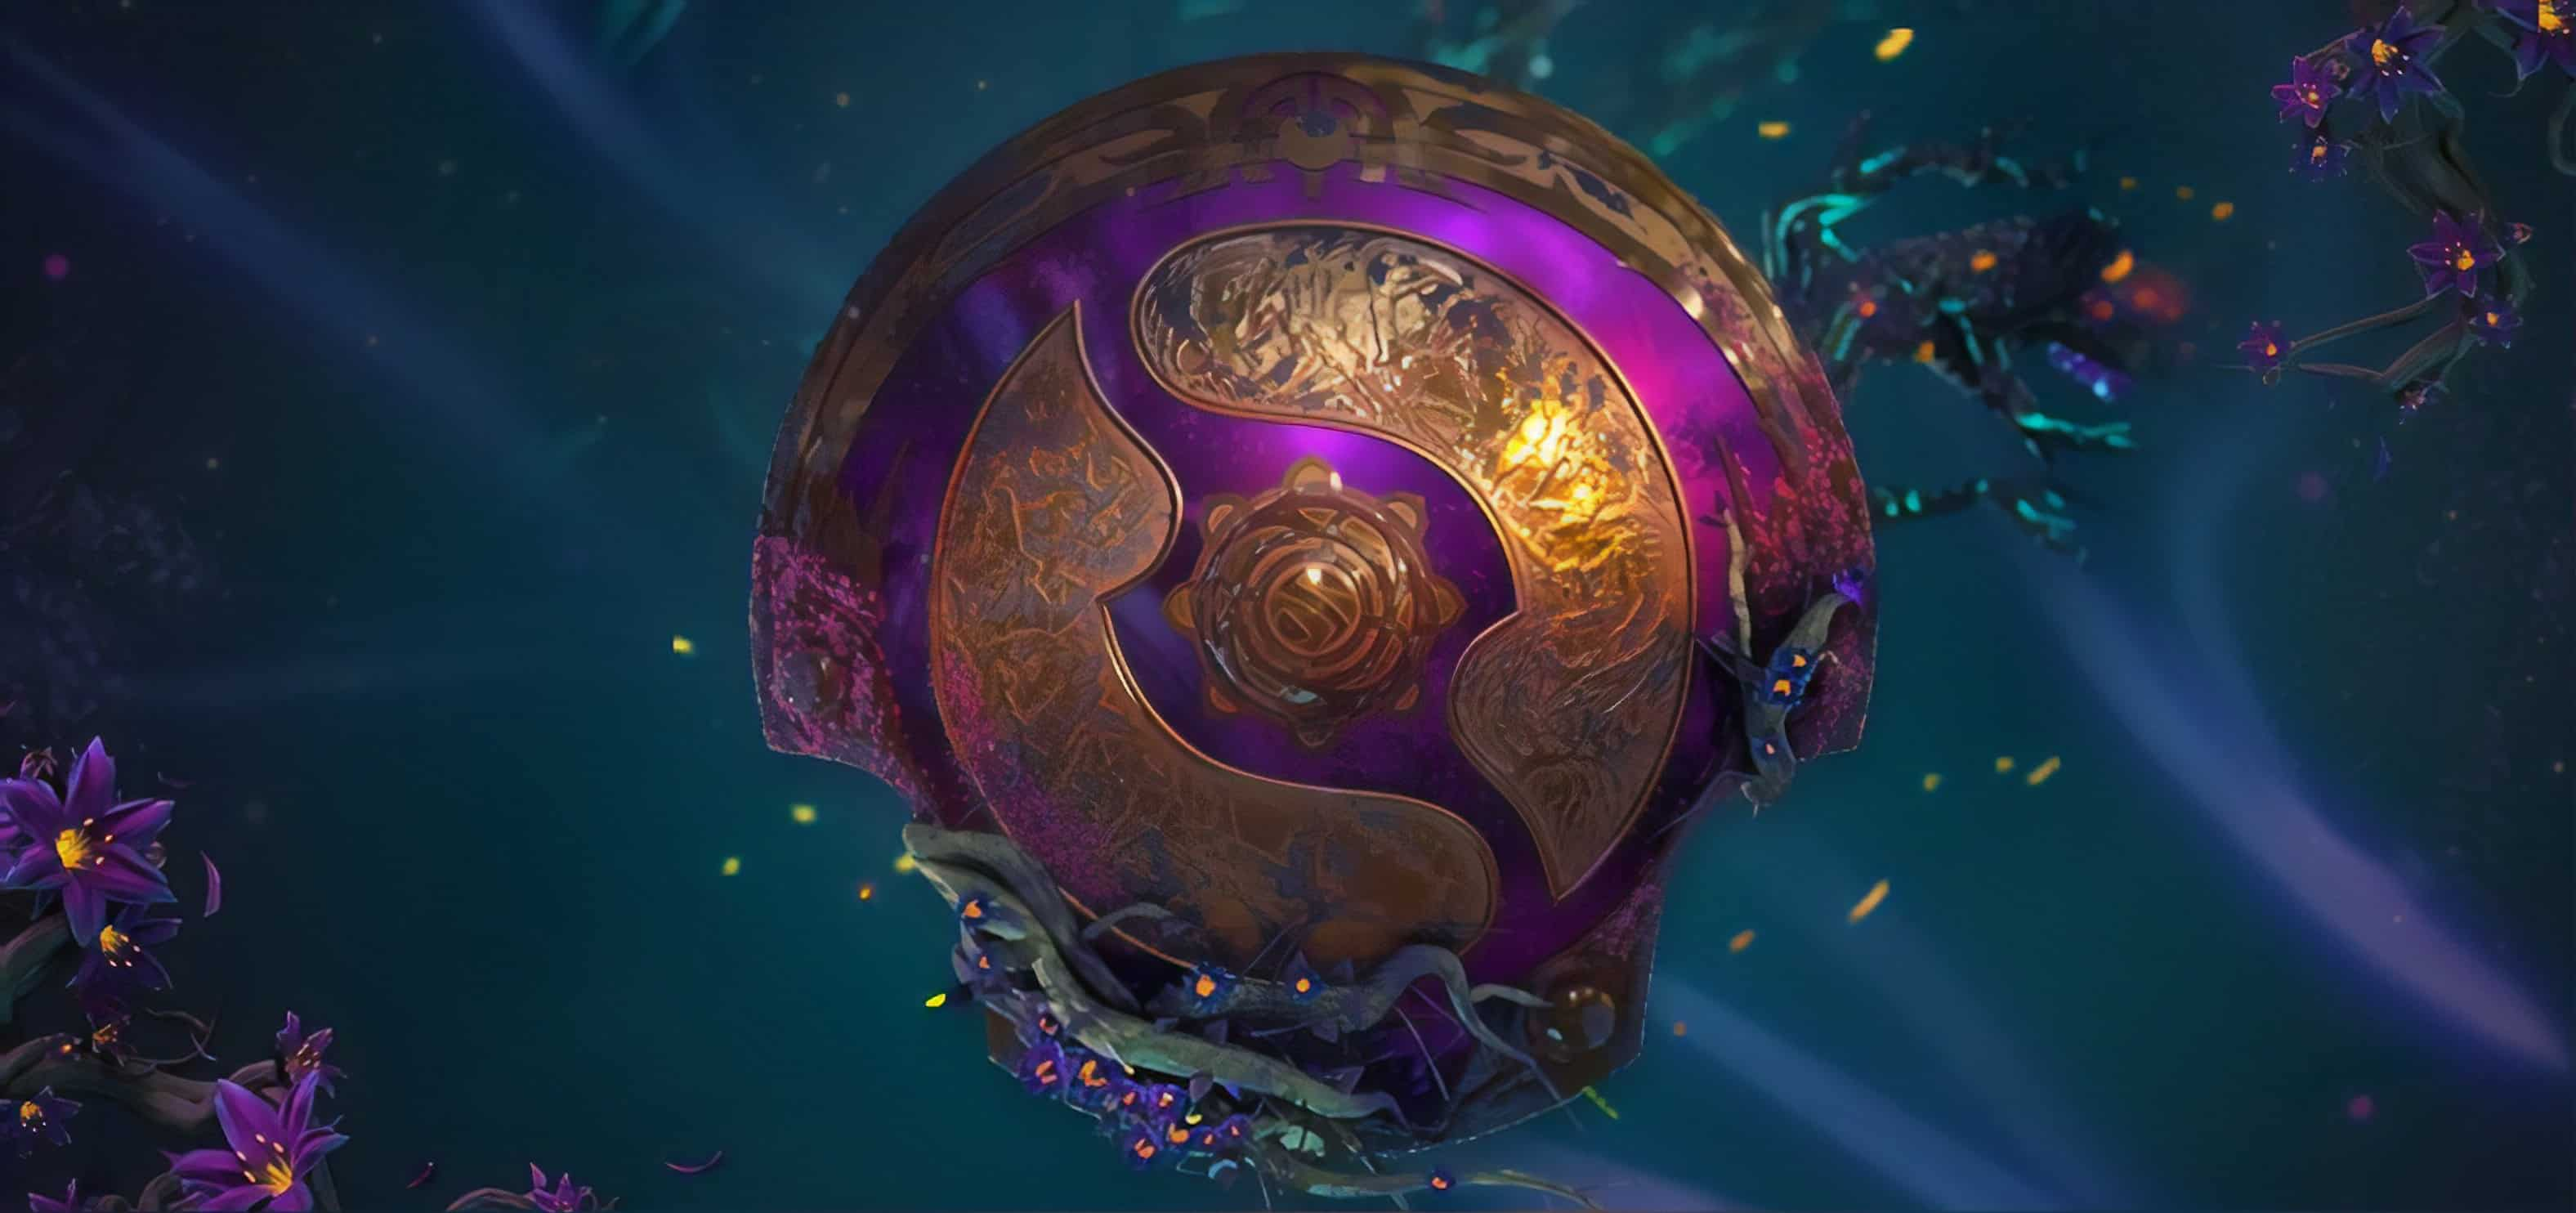 Photo of Dota 2 The International 9 prize pool is on its way to become the biggest ever